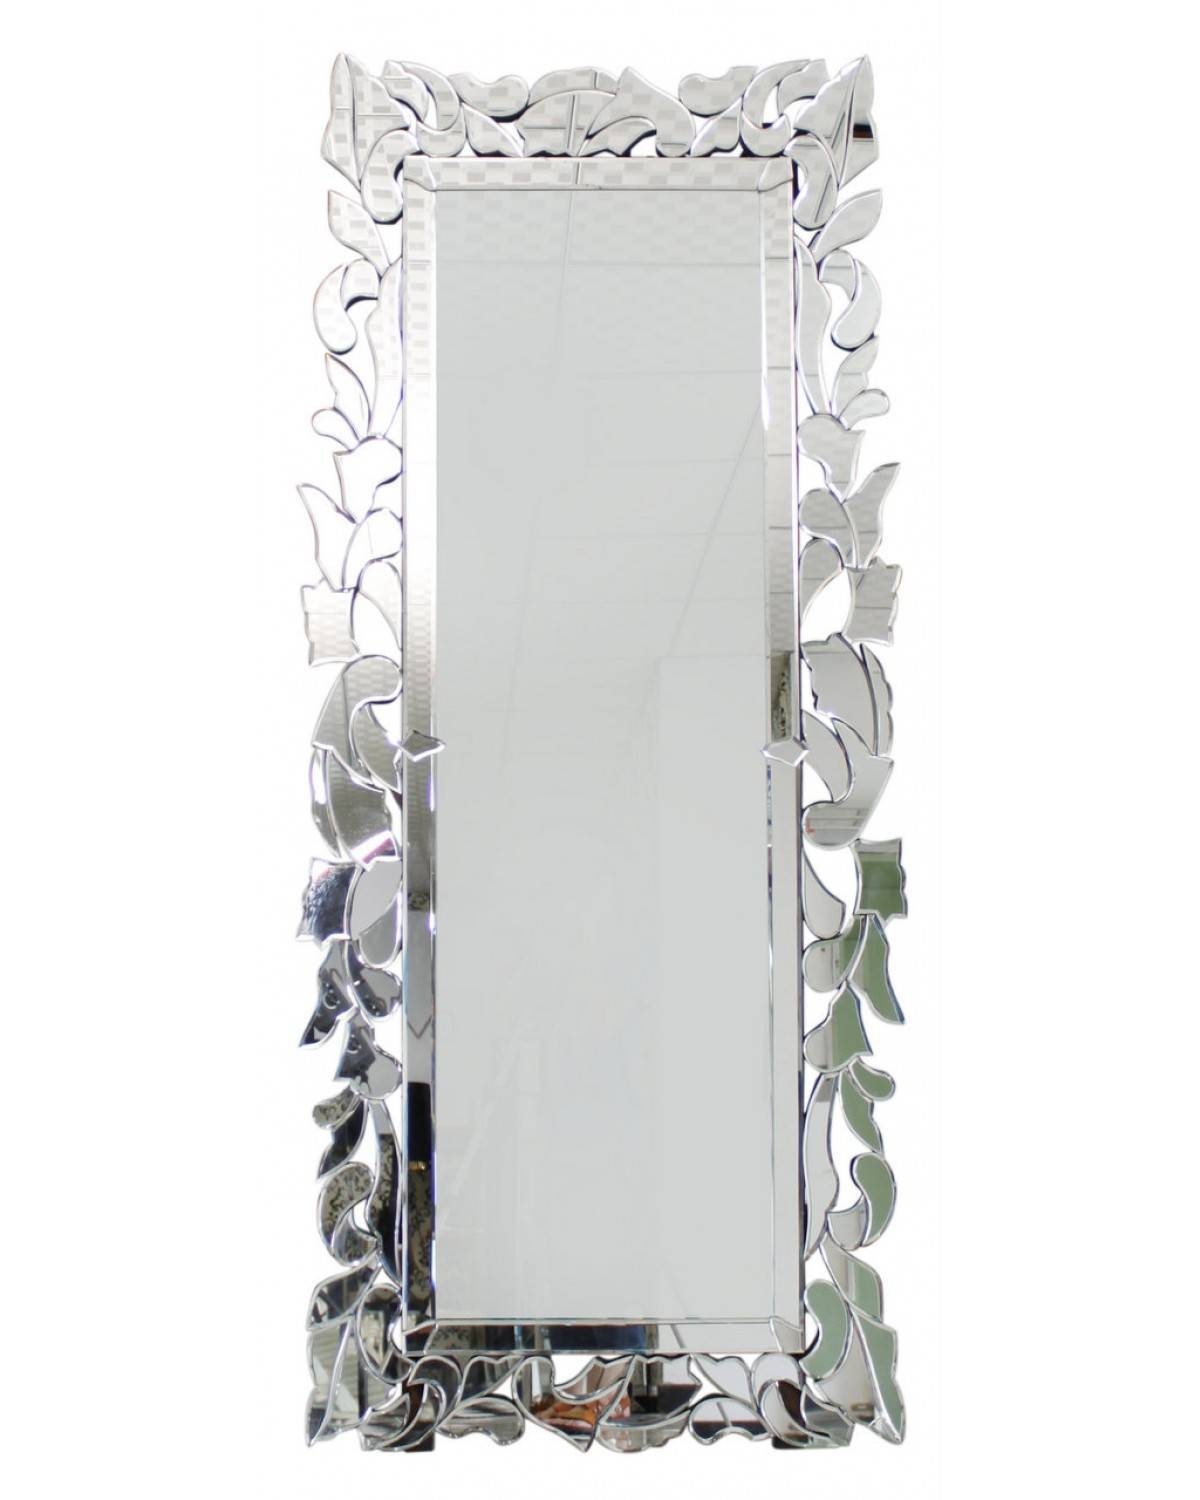 Mirror : I Love Mirrors Beautiful Full Length Venetian Mirror intended for Extra Large Venetian Mirrors (Image 7 of 15)